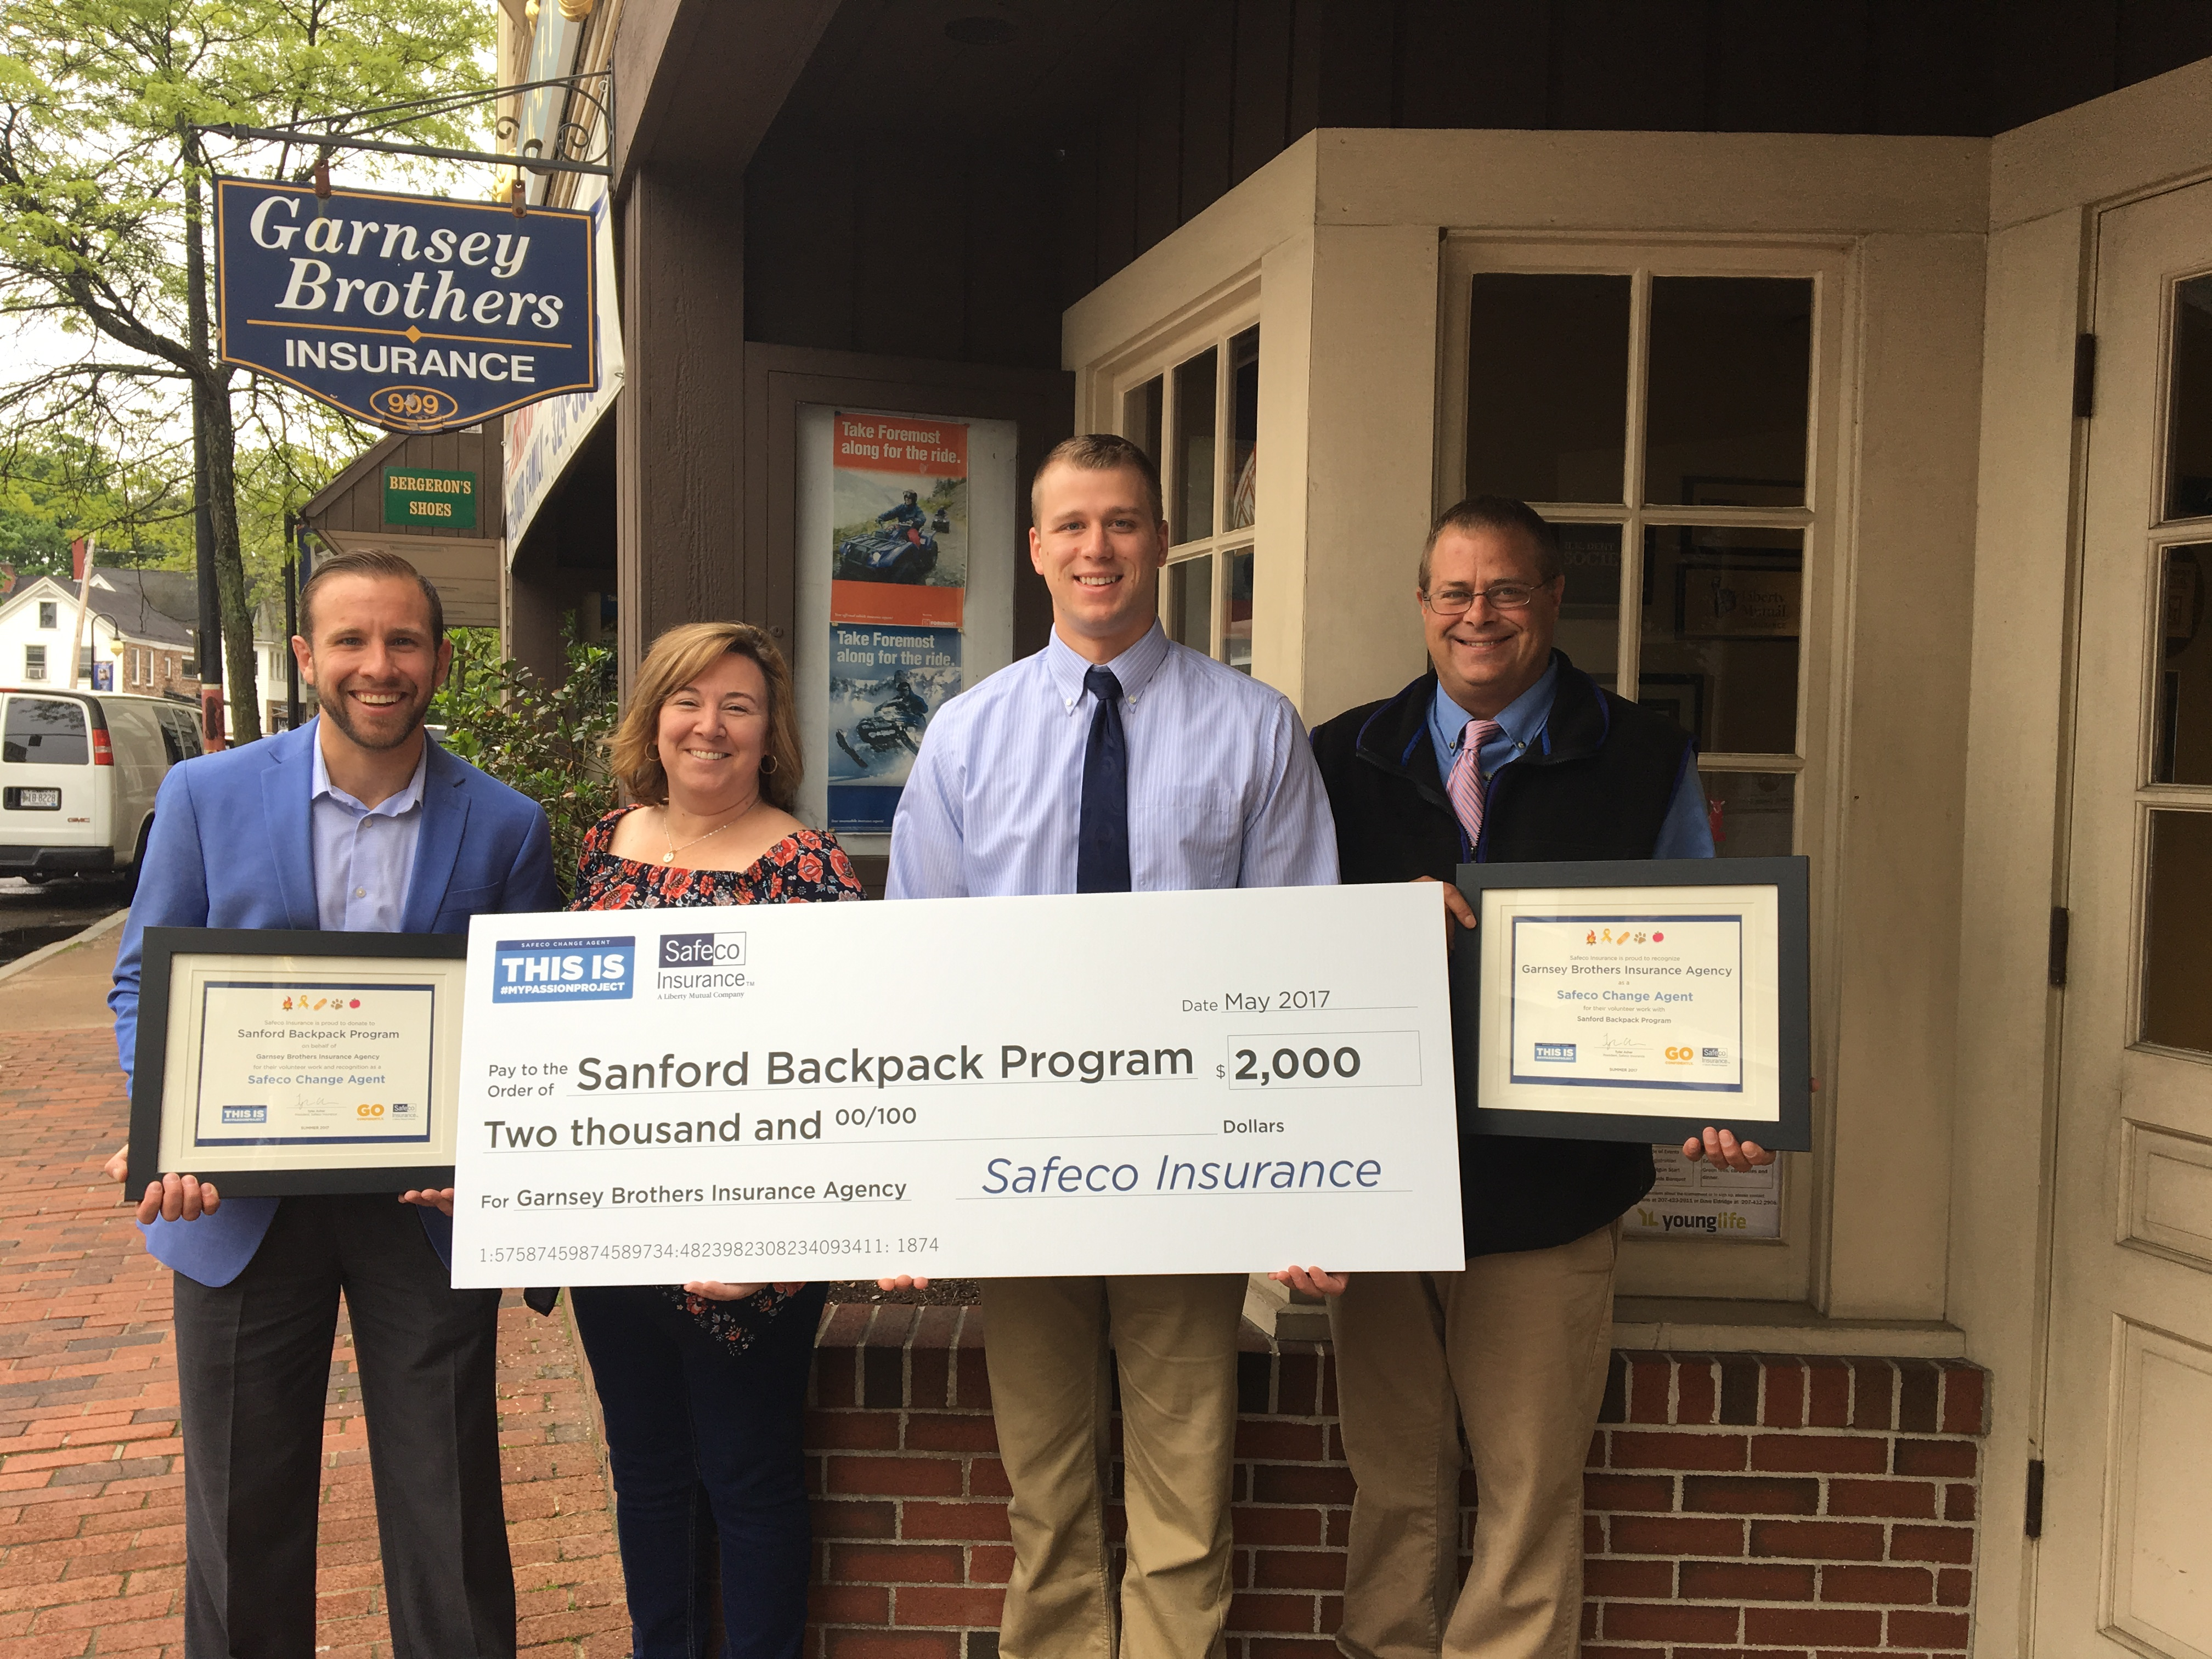 Nate Maclure  OF Safeco Insurance, Kirsten McGarry of the Sanford Backpack Program and Nick Roux and Keith Lapointe, both of Garnsey Brothers Insurance Agency pause for a photo commemorating the donation by Safeco Insurance to the Sanford Backpack Program through the efforts of Garnsey Brothers in a social media campaign. COURTESY PHOTO/Strategies for a Stronger Sanford